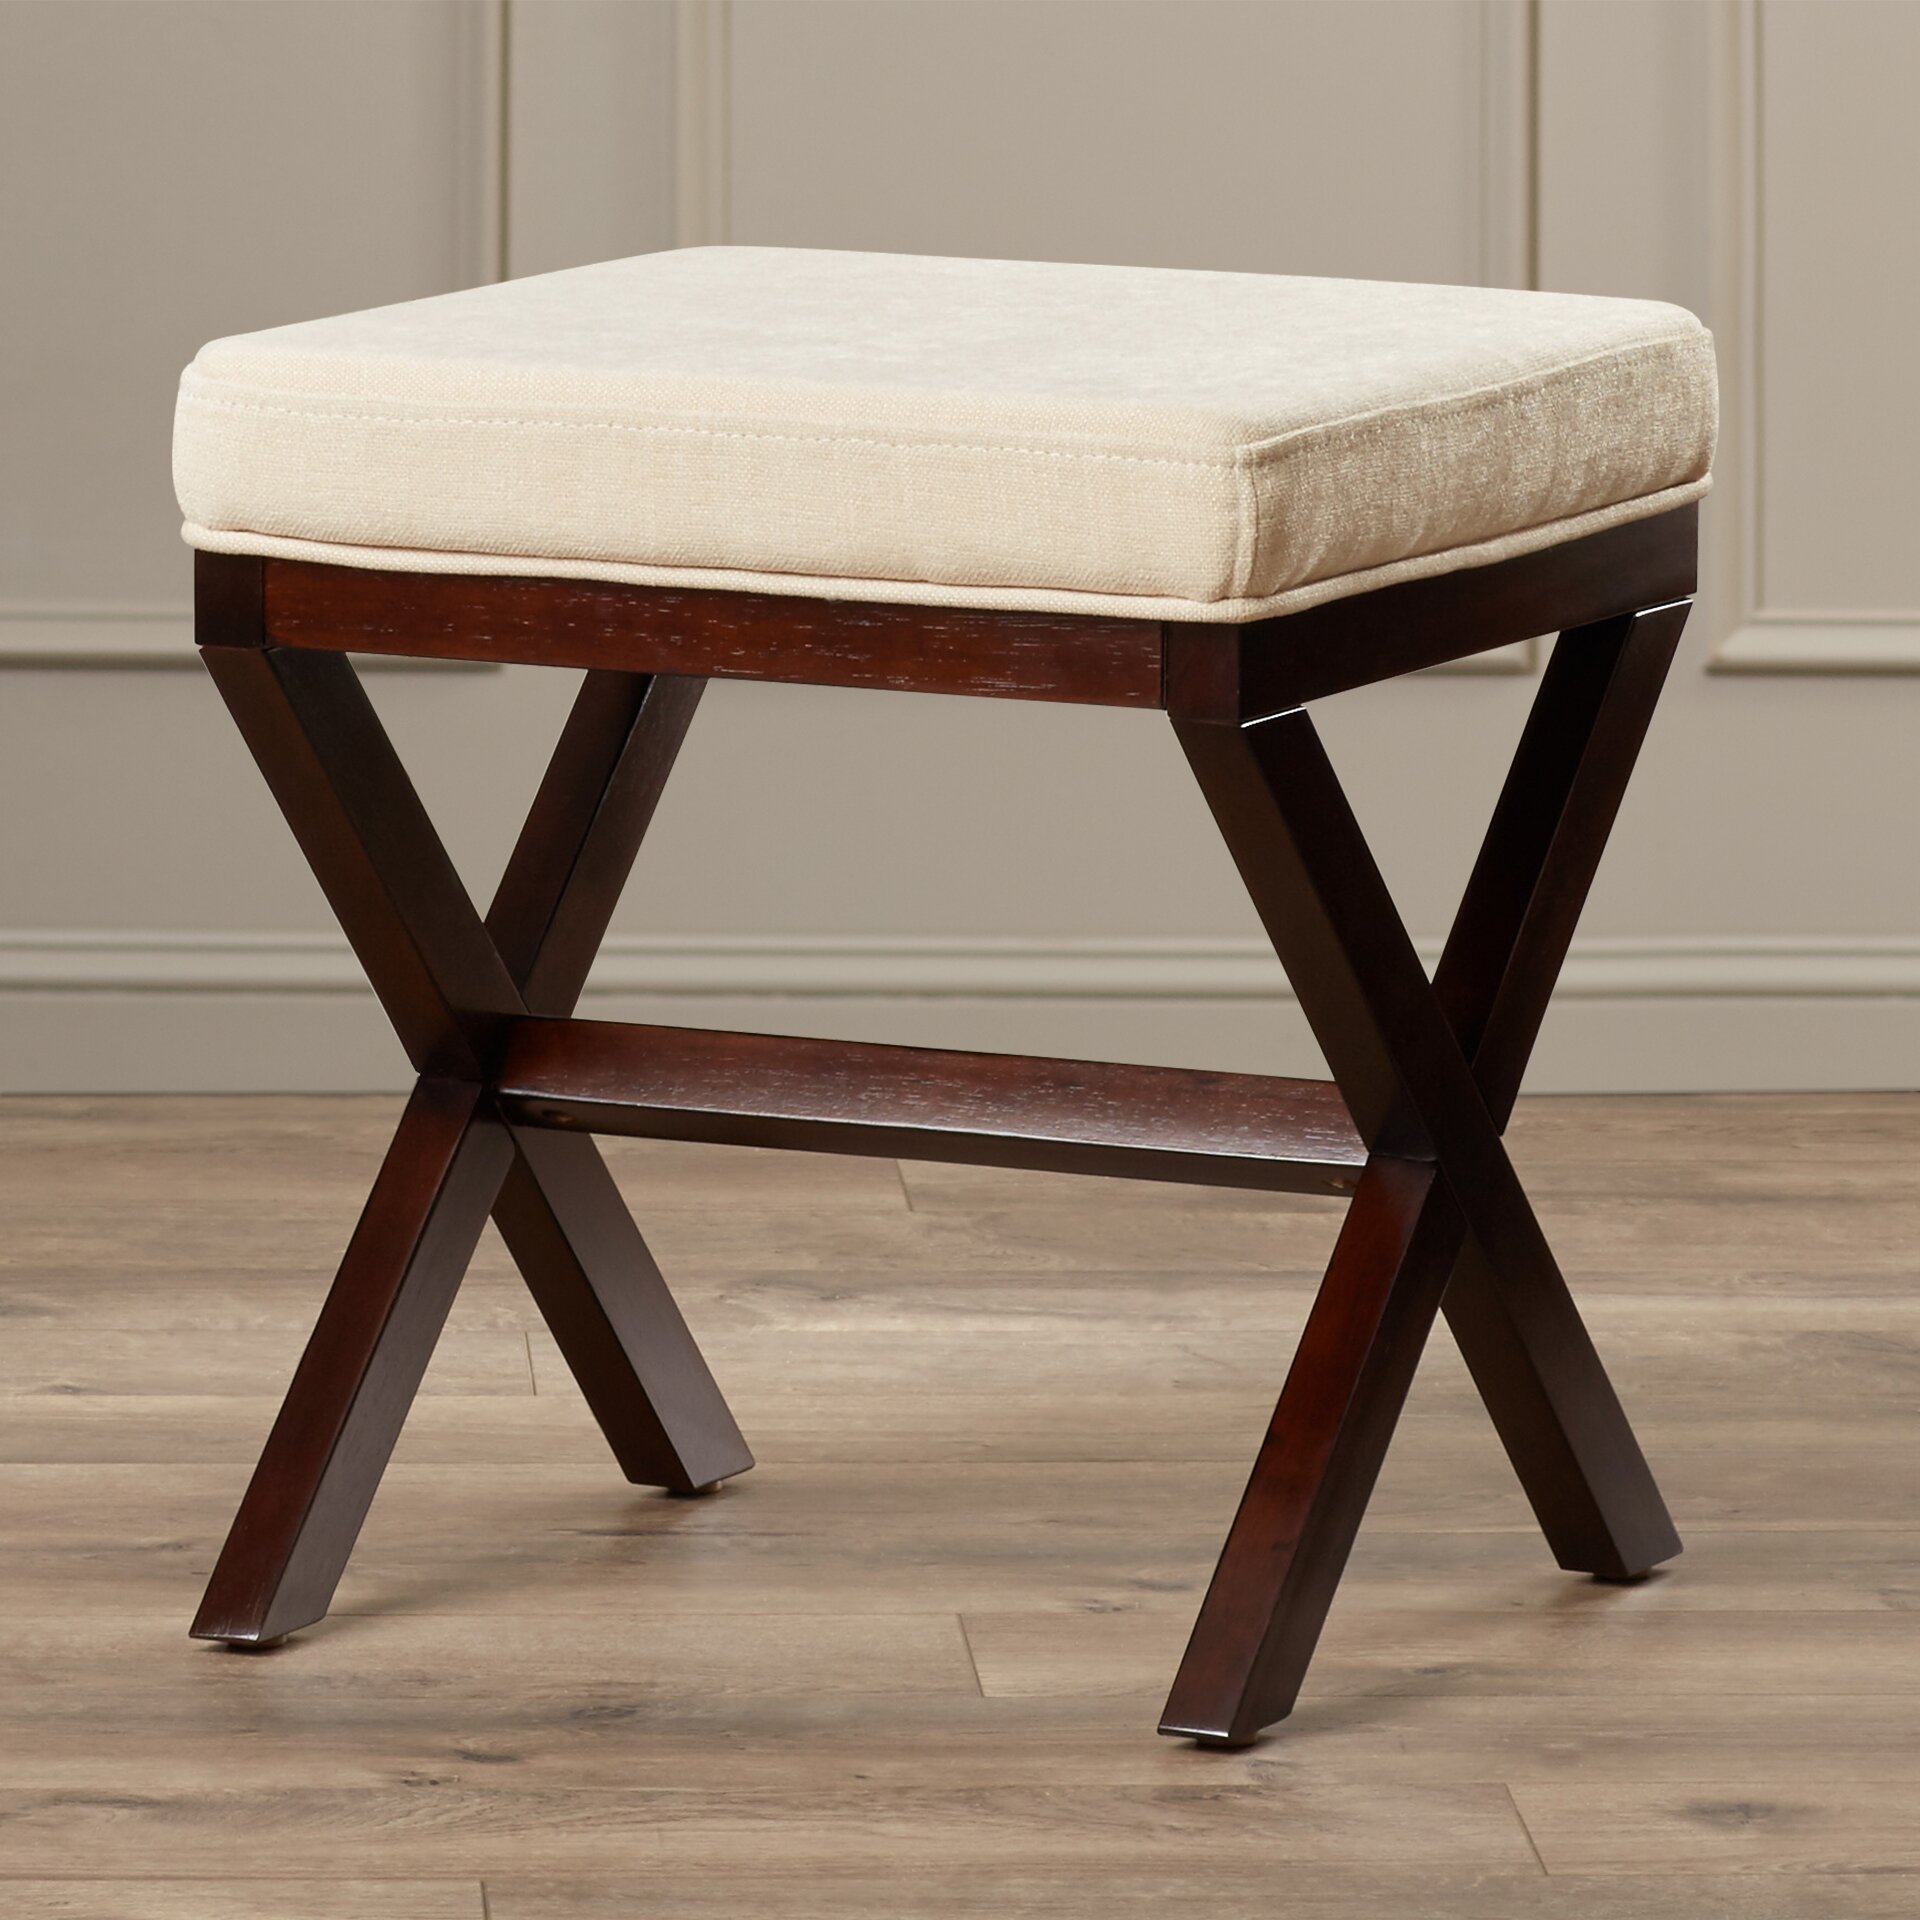 Amazing photo of Charlton Home Wood Vanity Stool & Reviews Wayfair with #2B170E color and 1920x1920 pixels